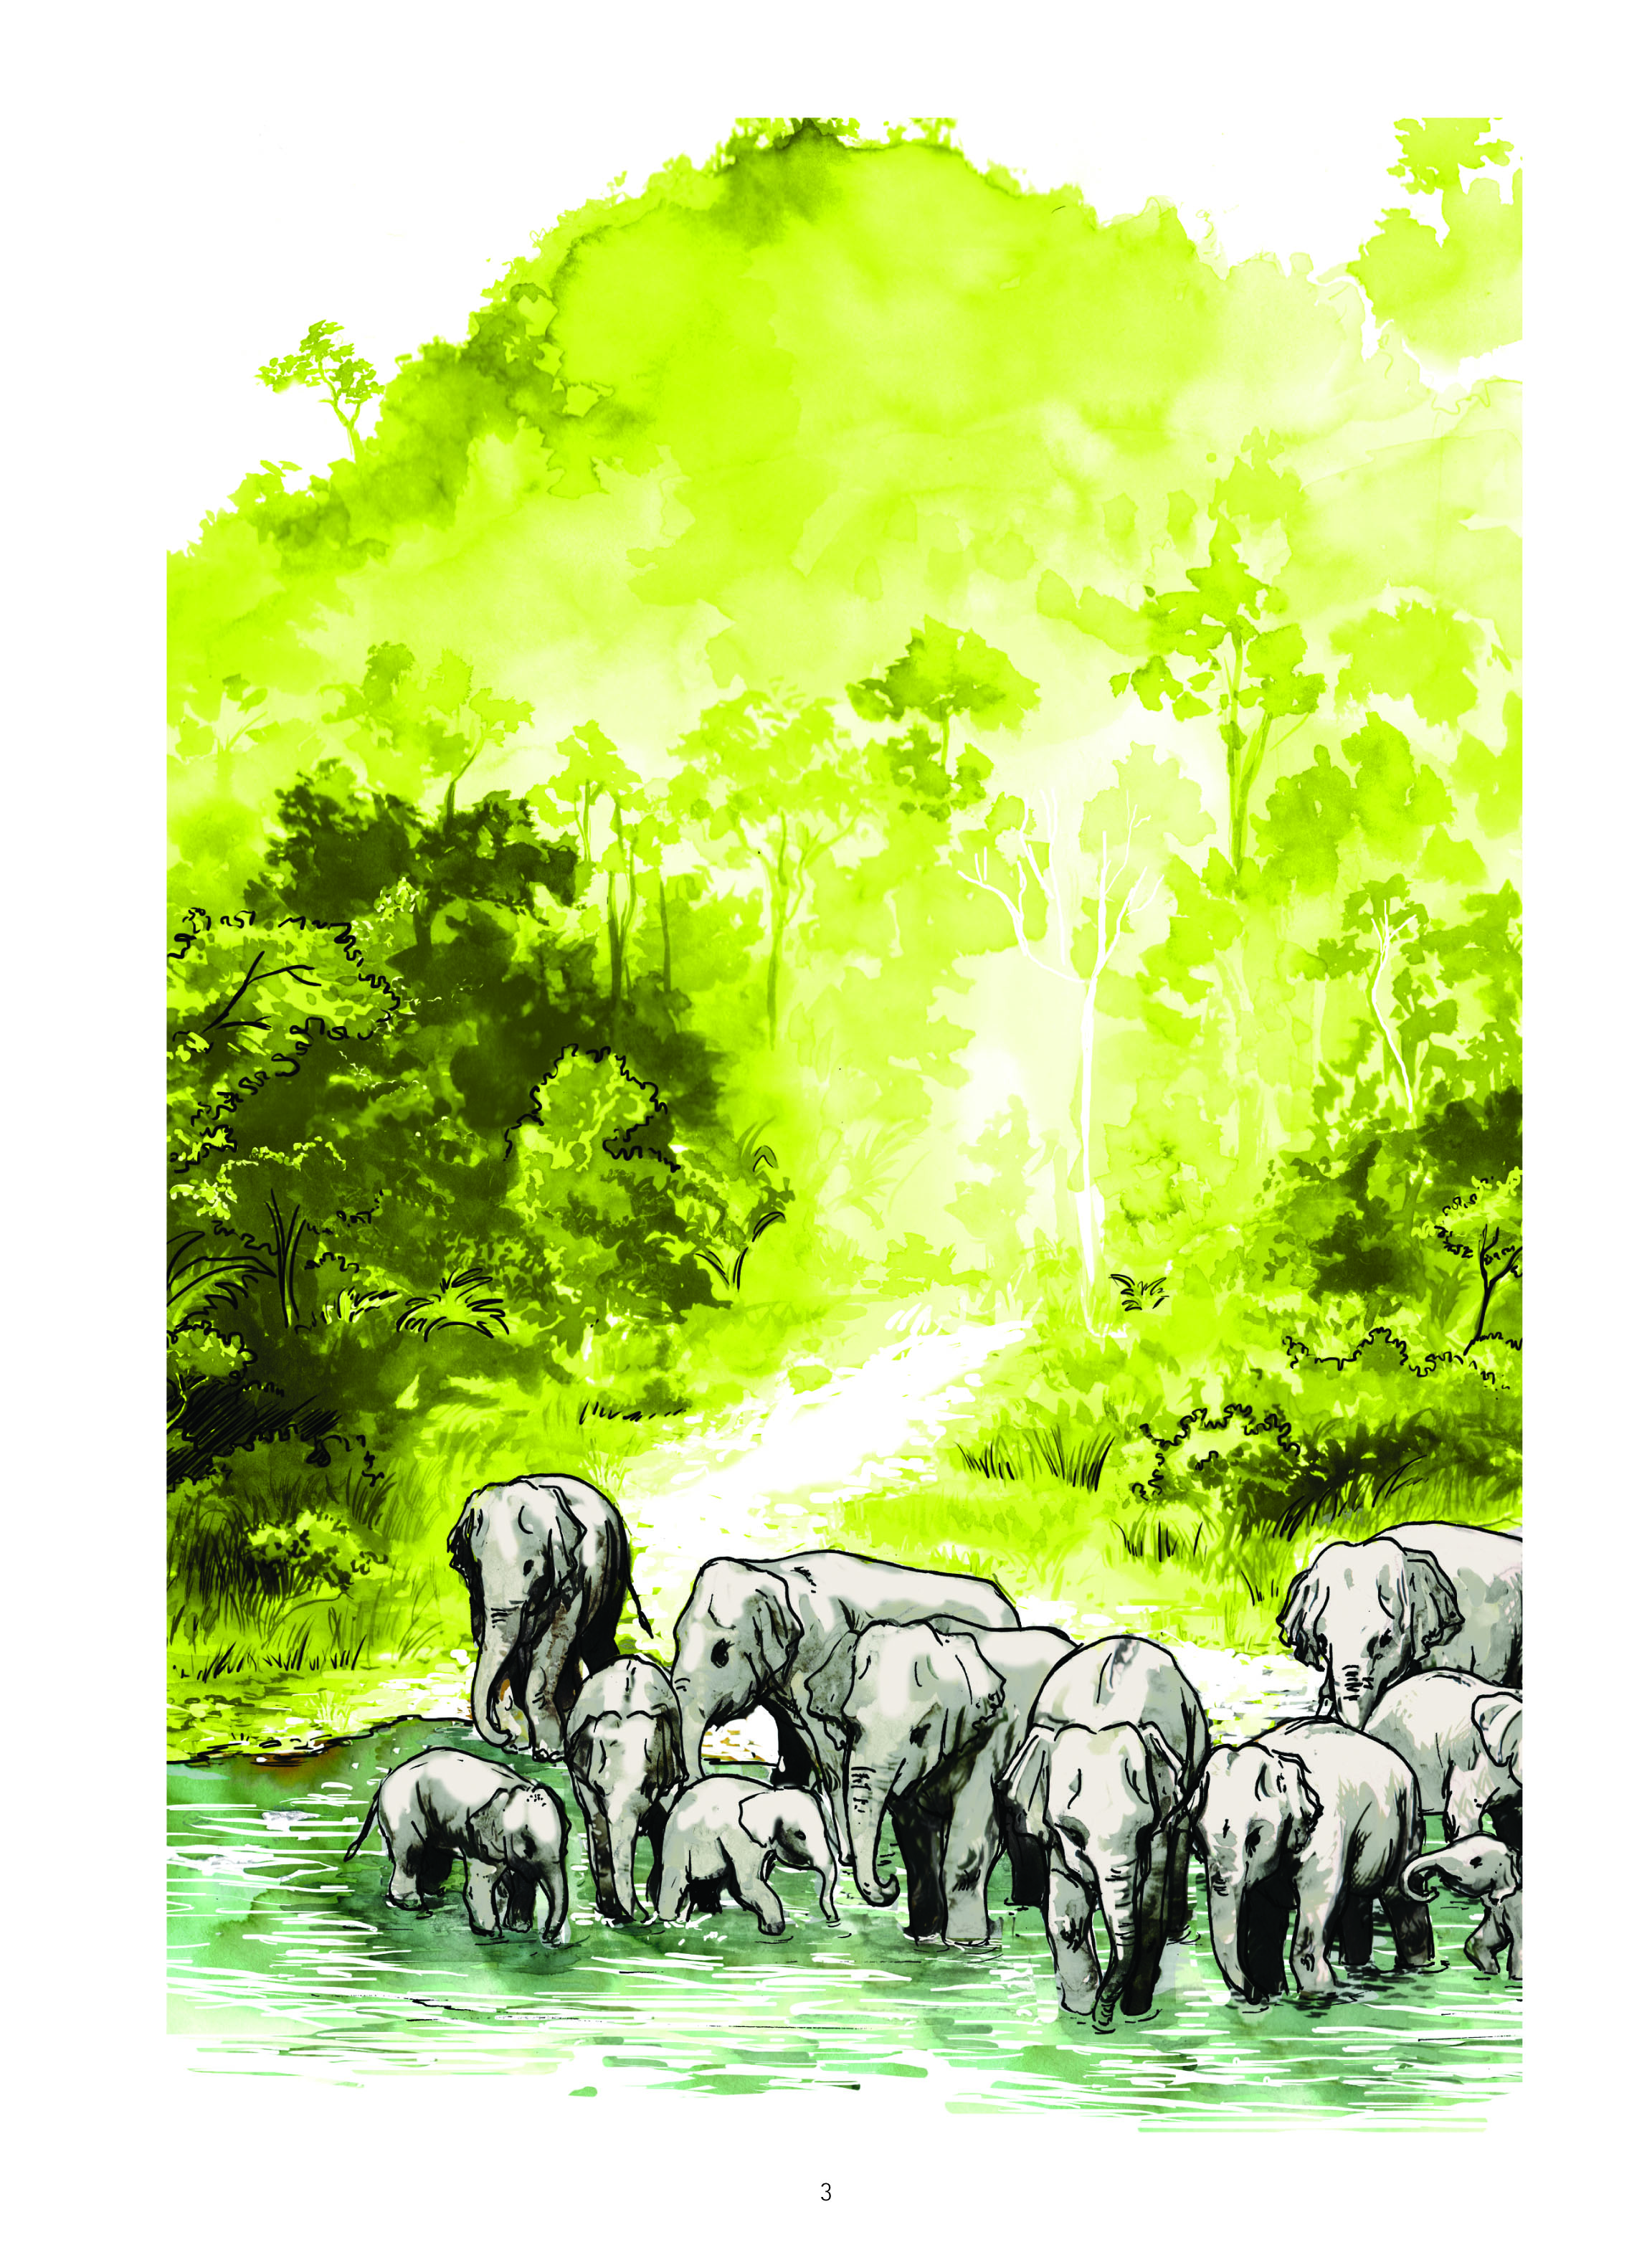 mep_million_elephants-3_tel